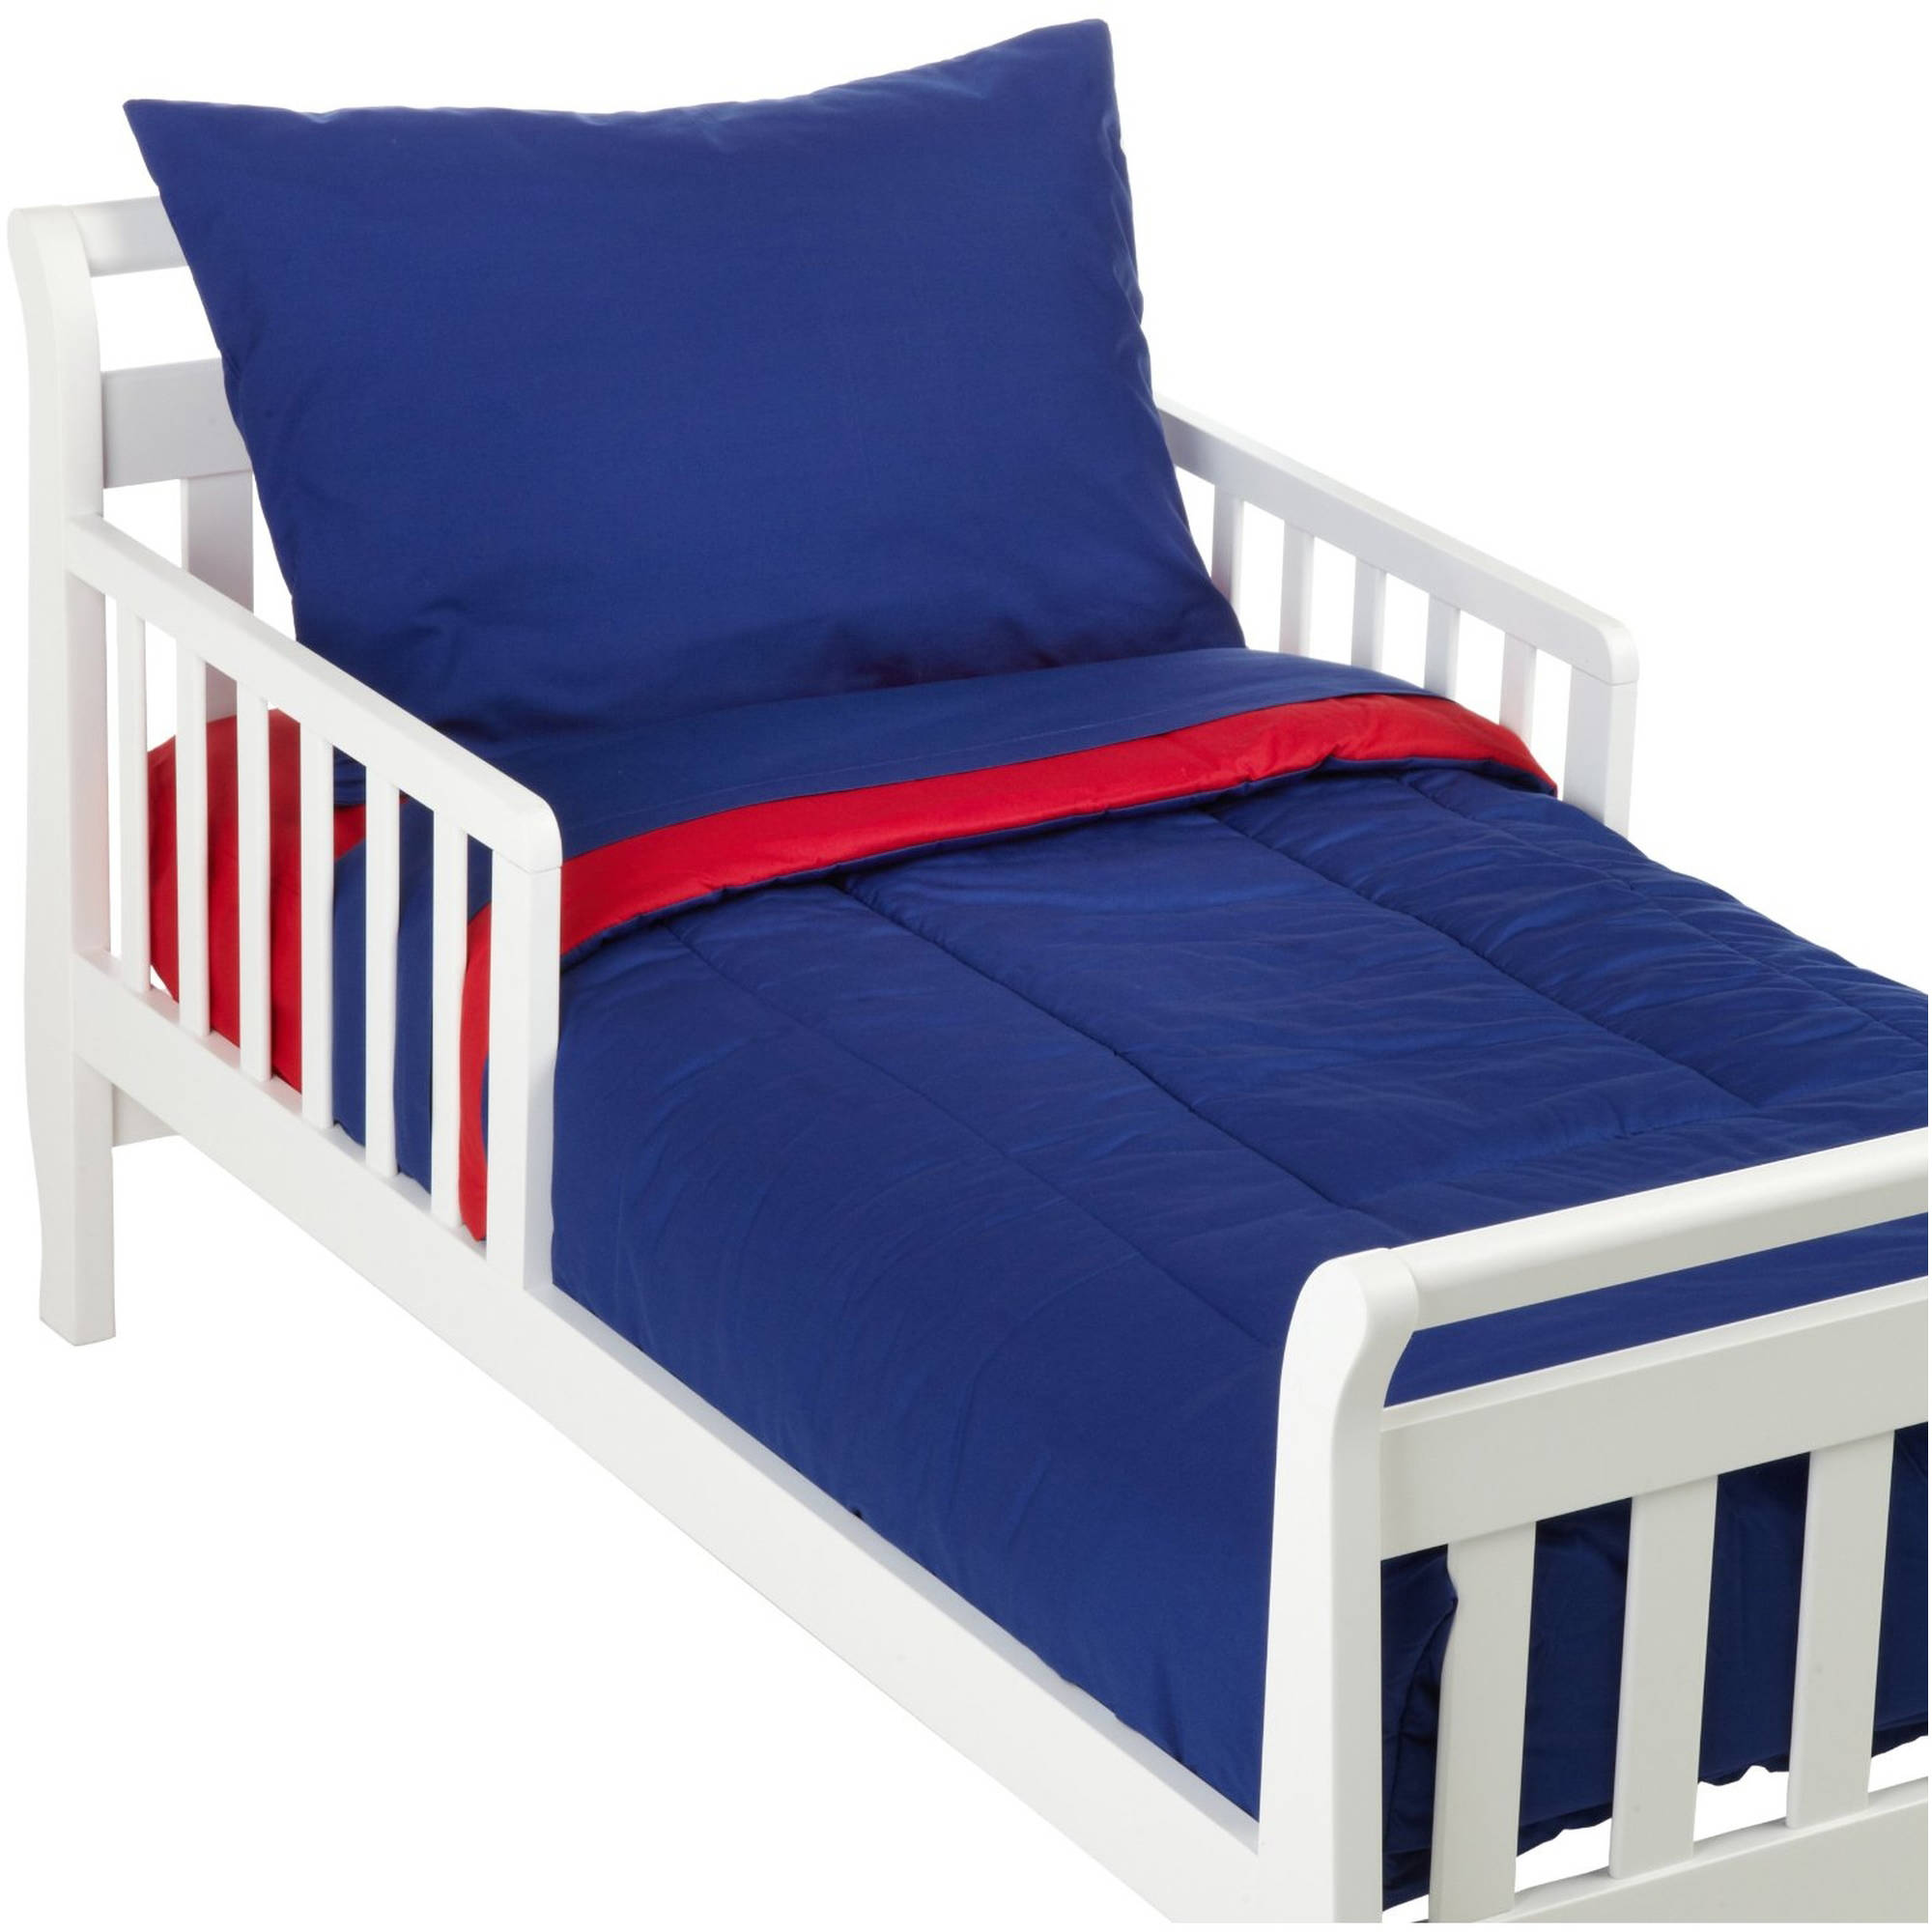 size 40 8b42b 9a748 Details about TL Care Cotton Percale Toddler Bedding Set, Royal